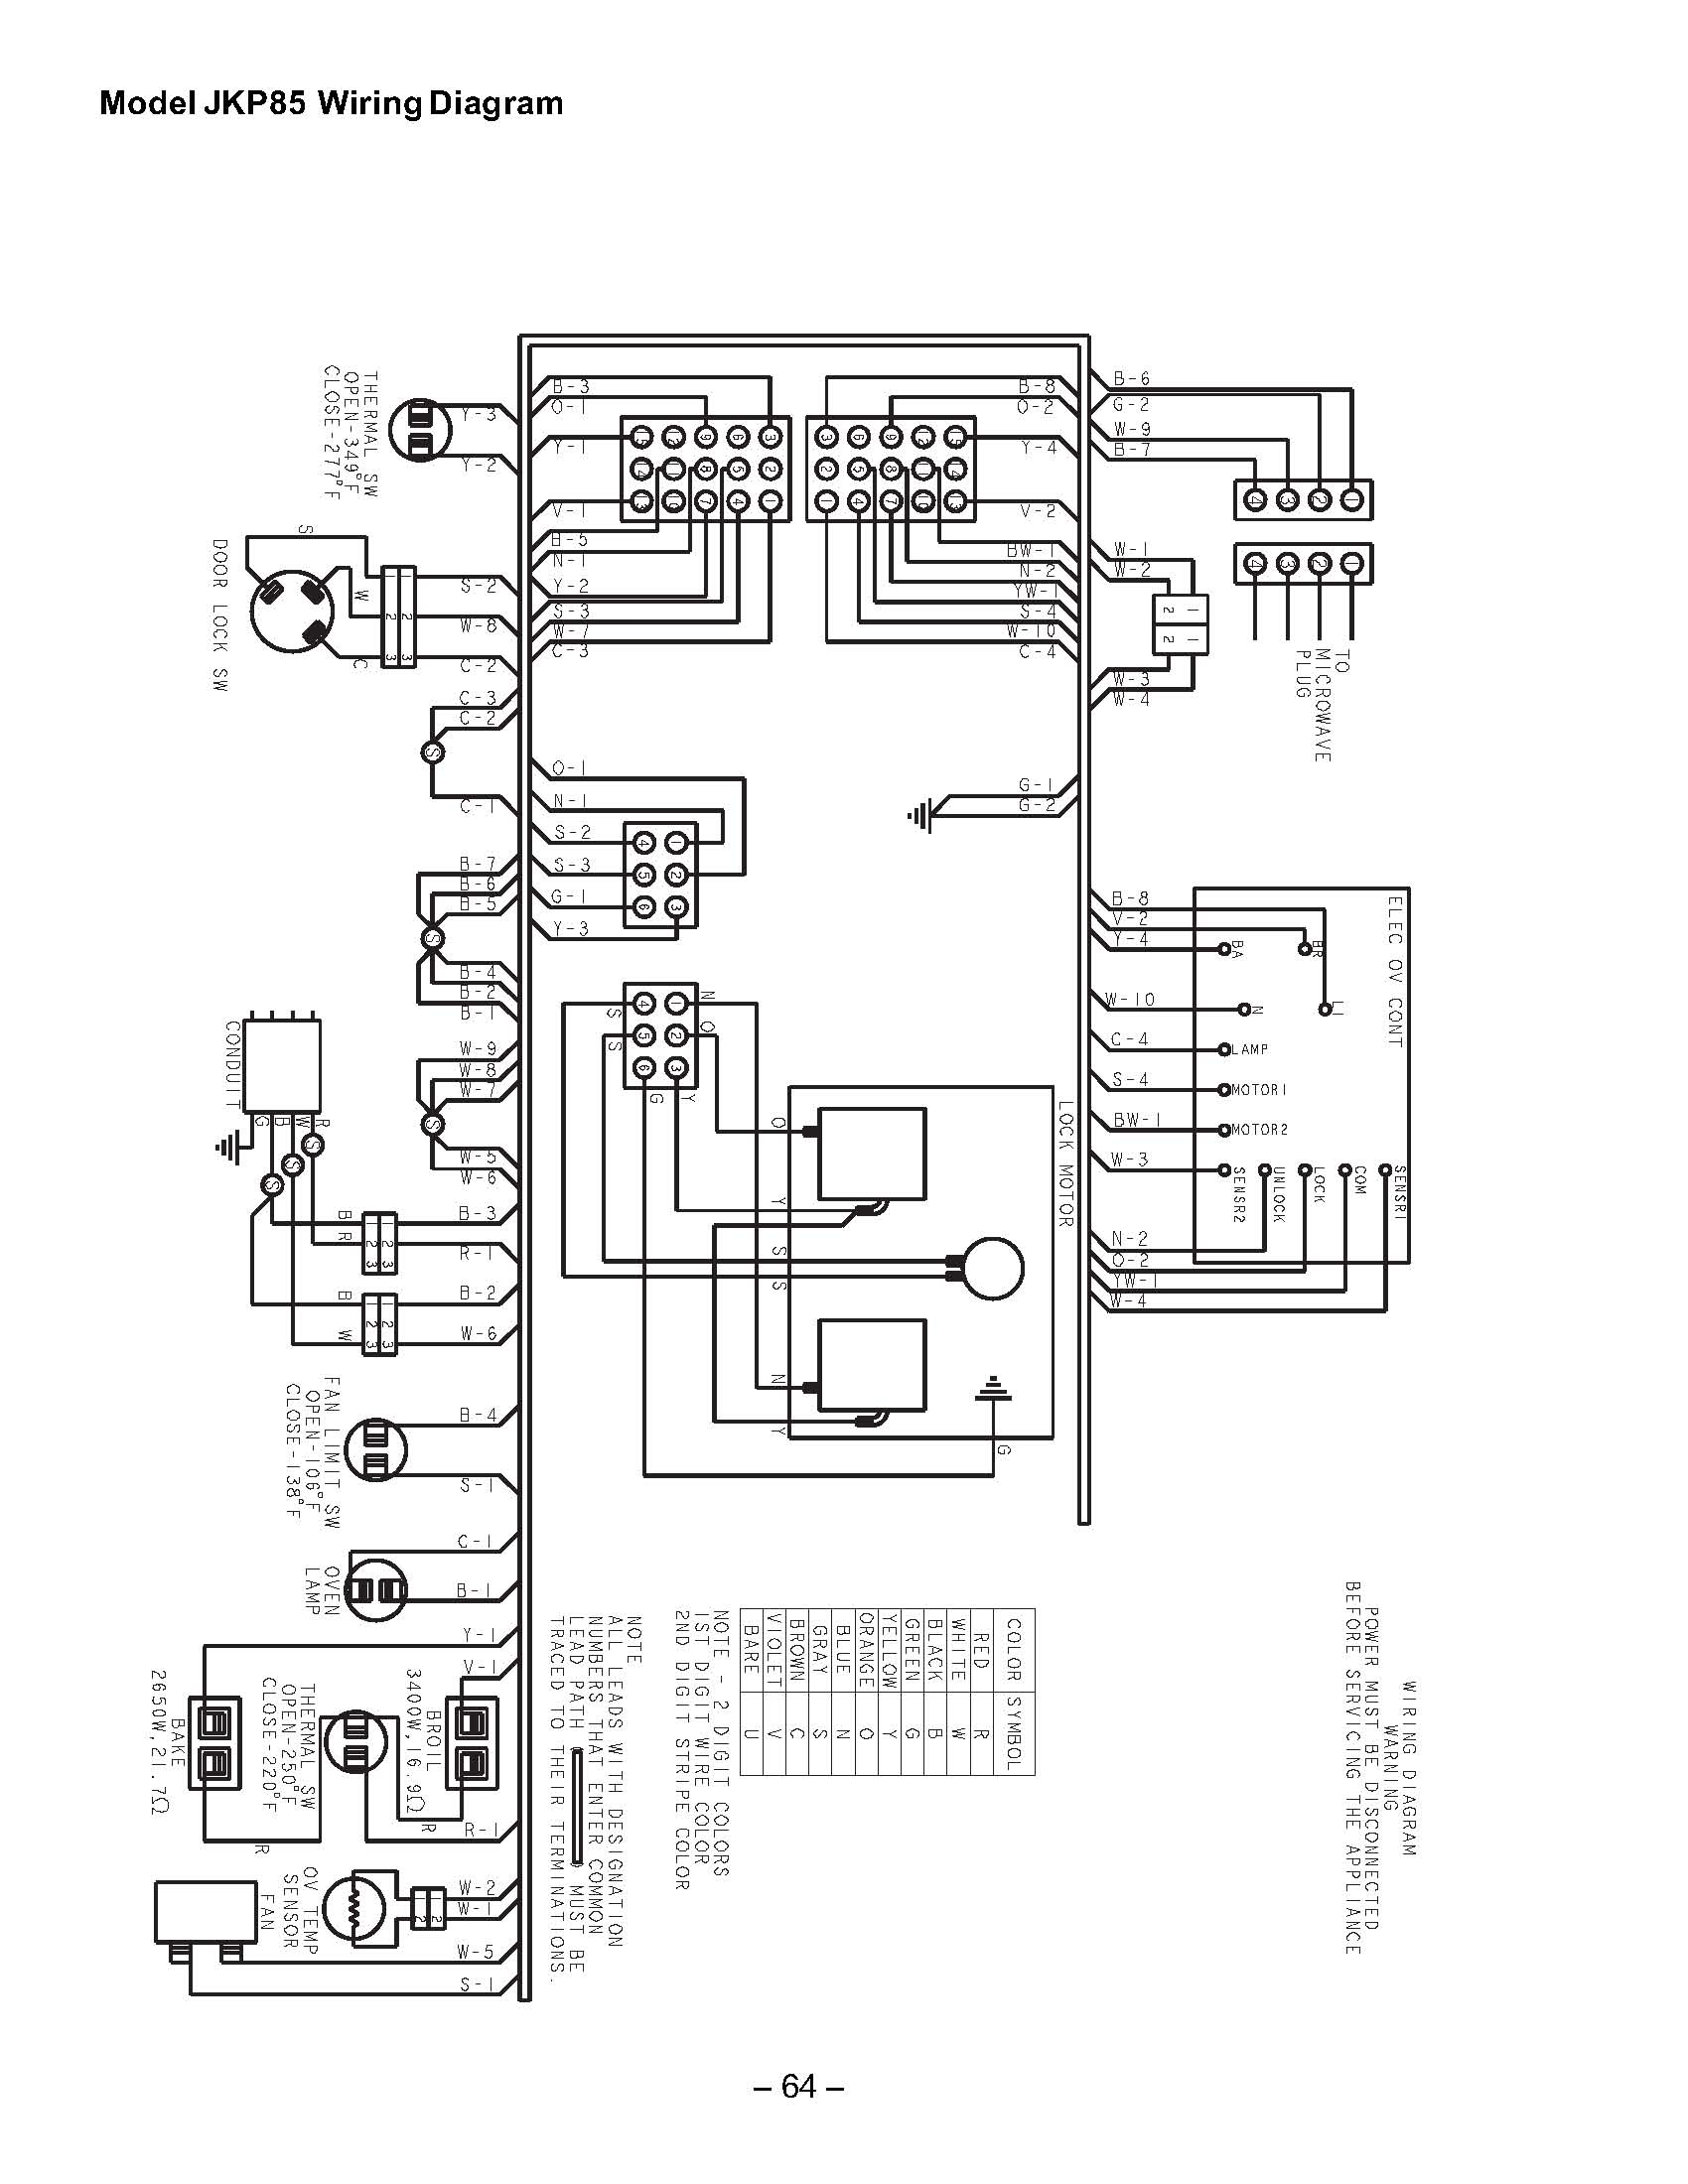 e46 engine wire harness schematic e46 engine wire harness layout wiring diagrams bull home support co #3